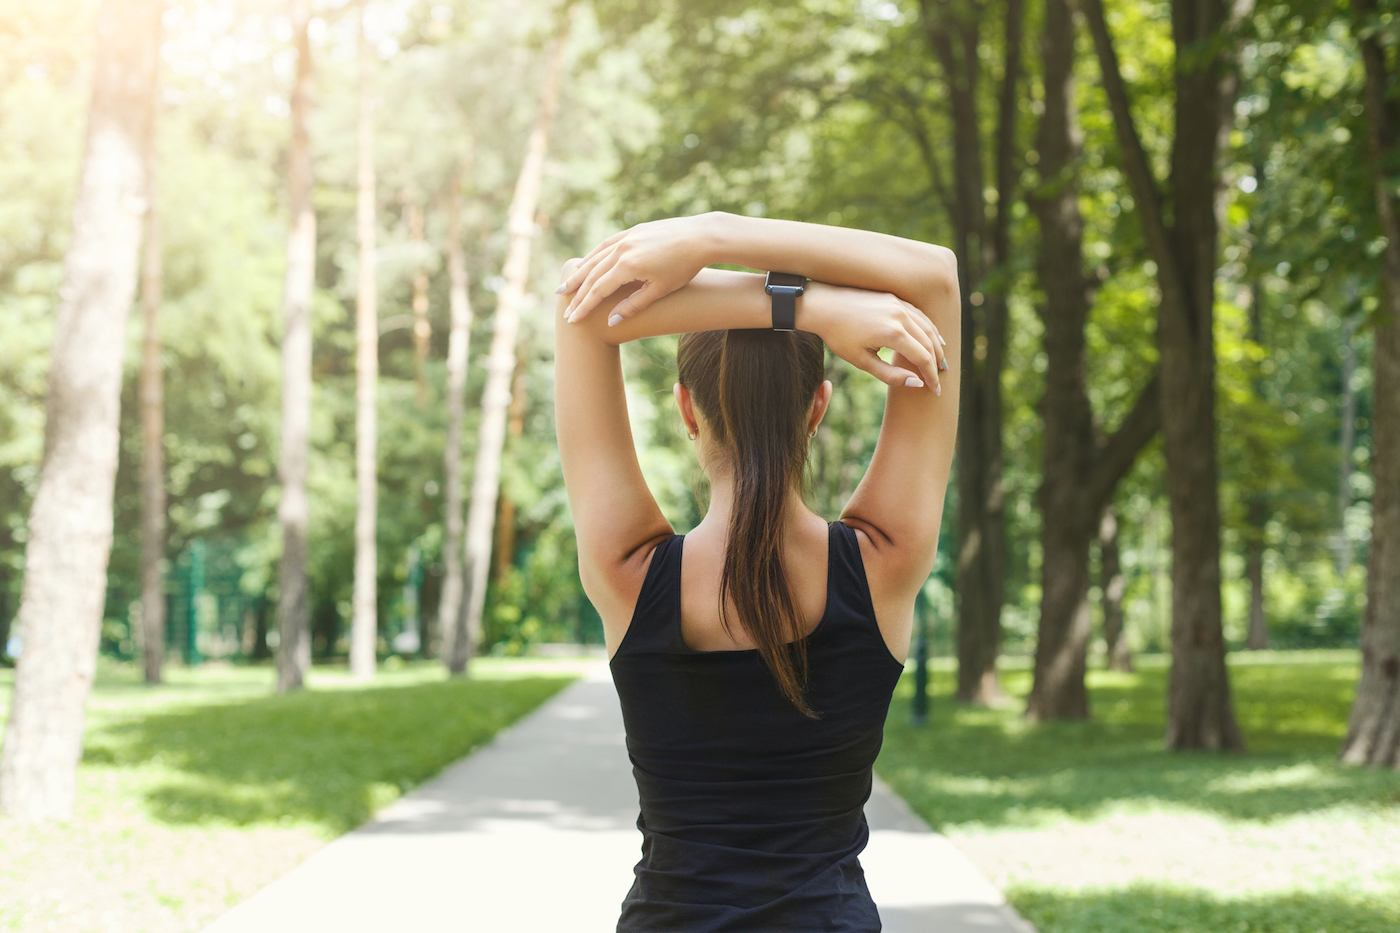 This is the exact place to stretch if you're dealing with lower back pain